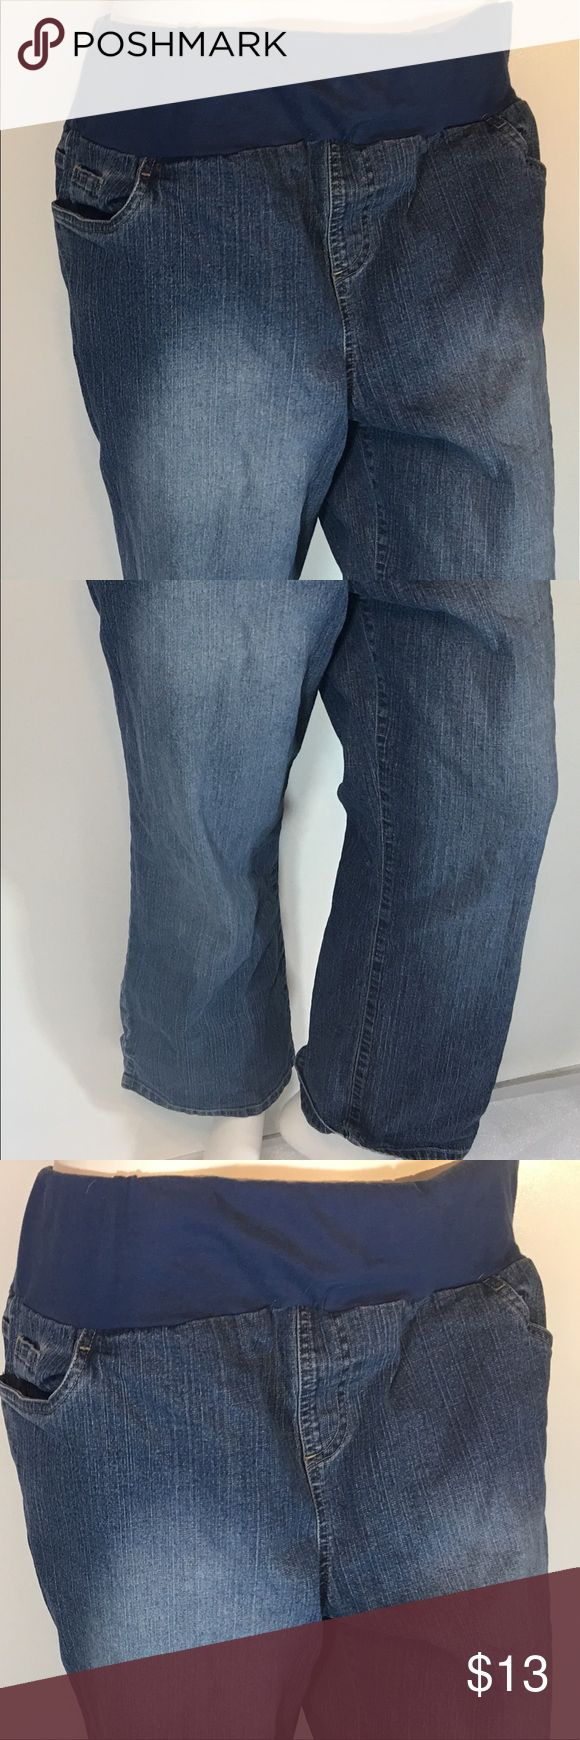 IN DUE TIME MATERNITY DENIM CAPRI JEANS SIZE Large IN DUE TIME MATERNITY DENIM CAPRI JEANS SIZE Large In Due Time Jeans